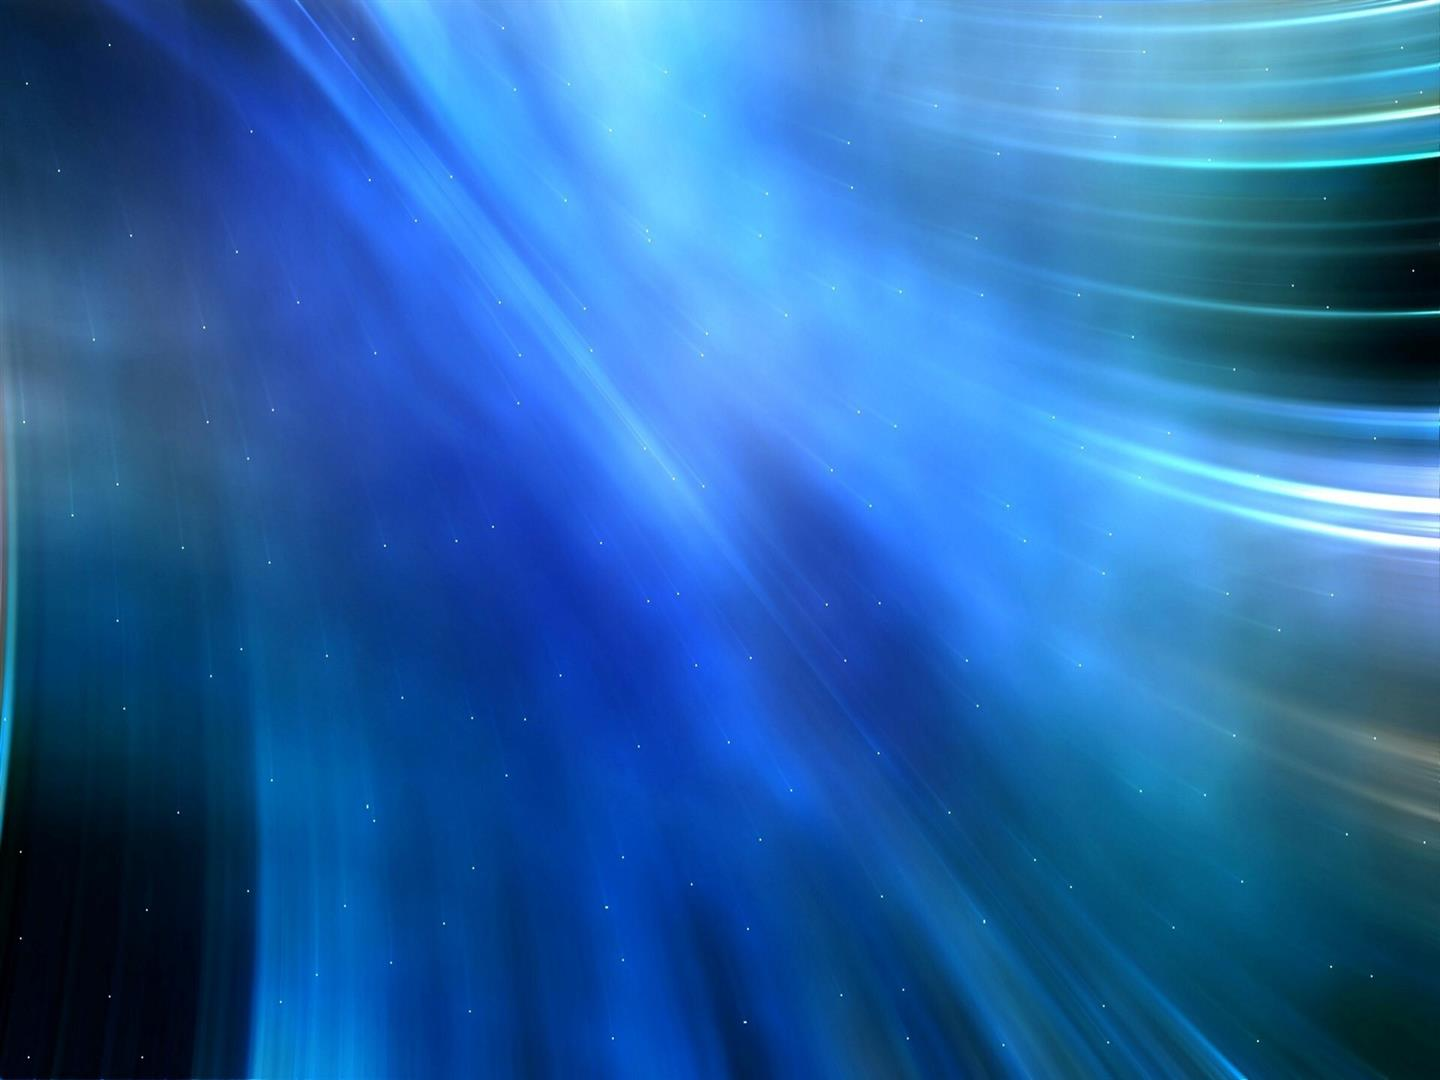 1440x1080 Blue Abstract Photo